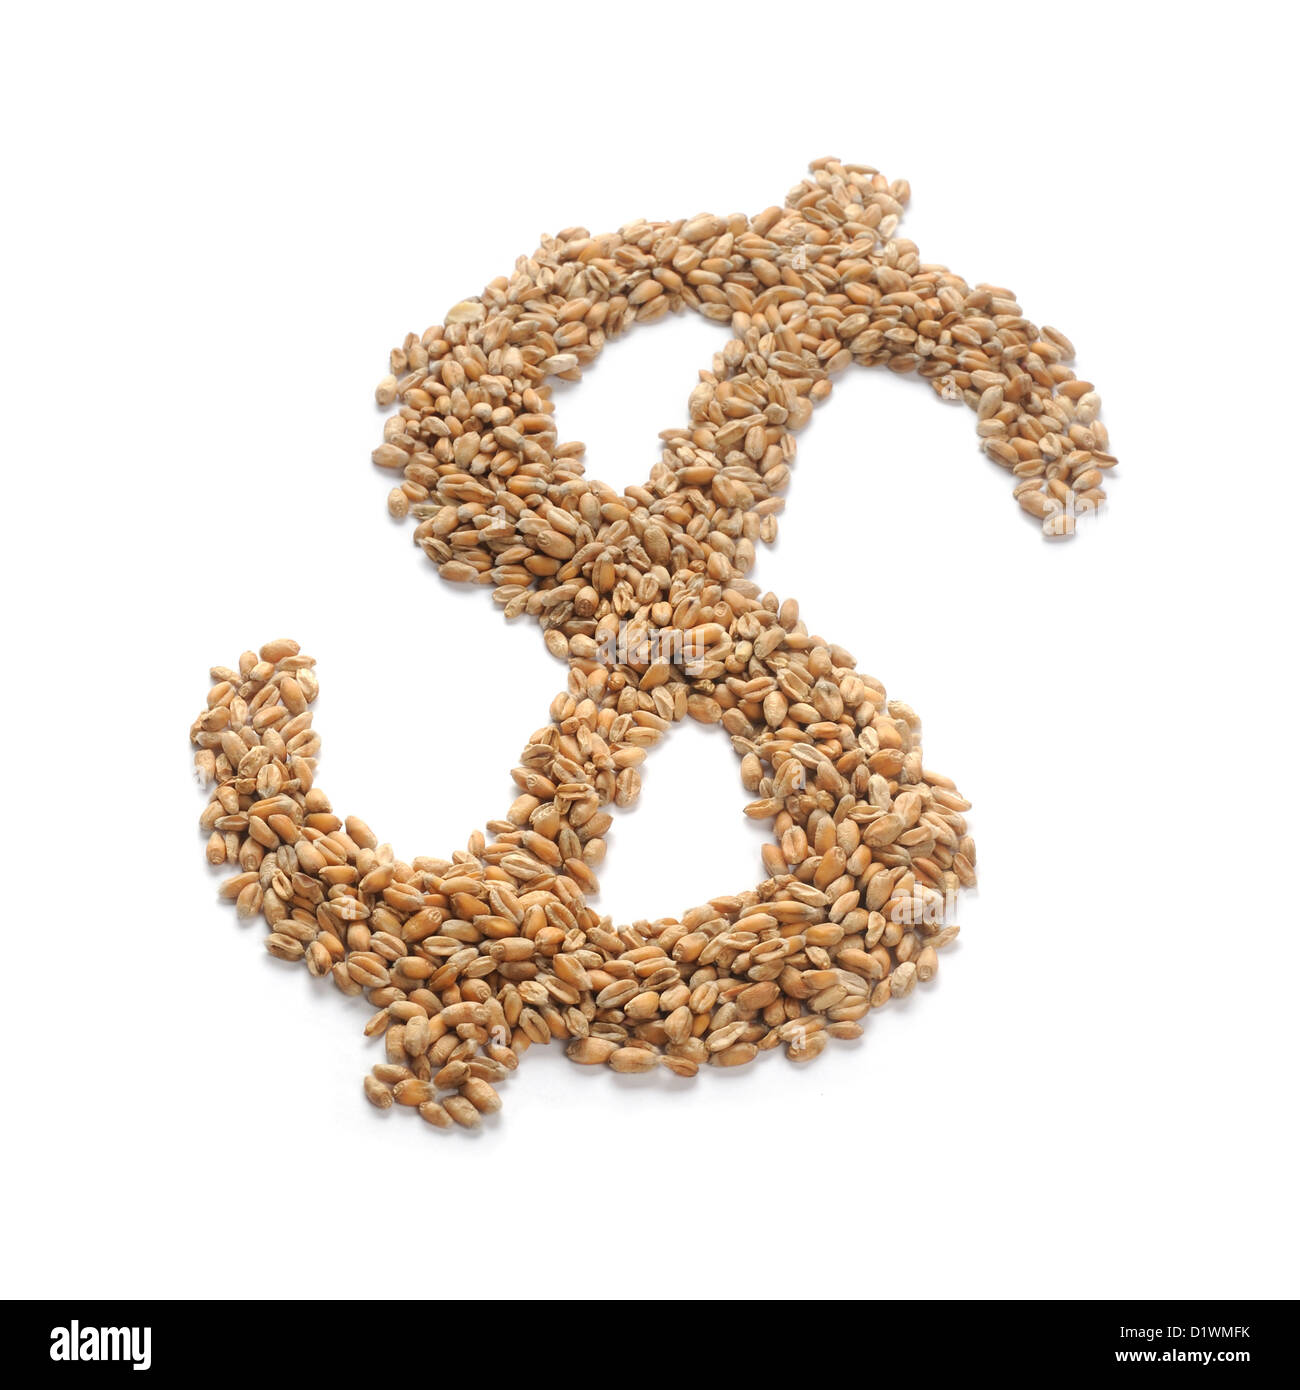 Wheat grains in shape of dollar sign - Stock Image